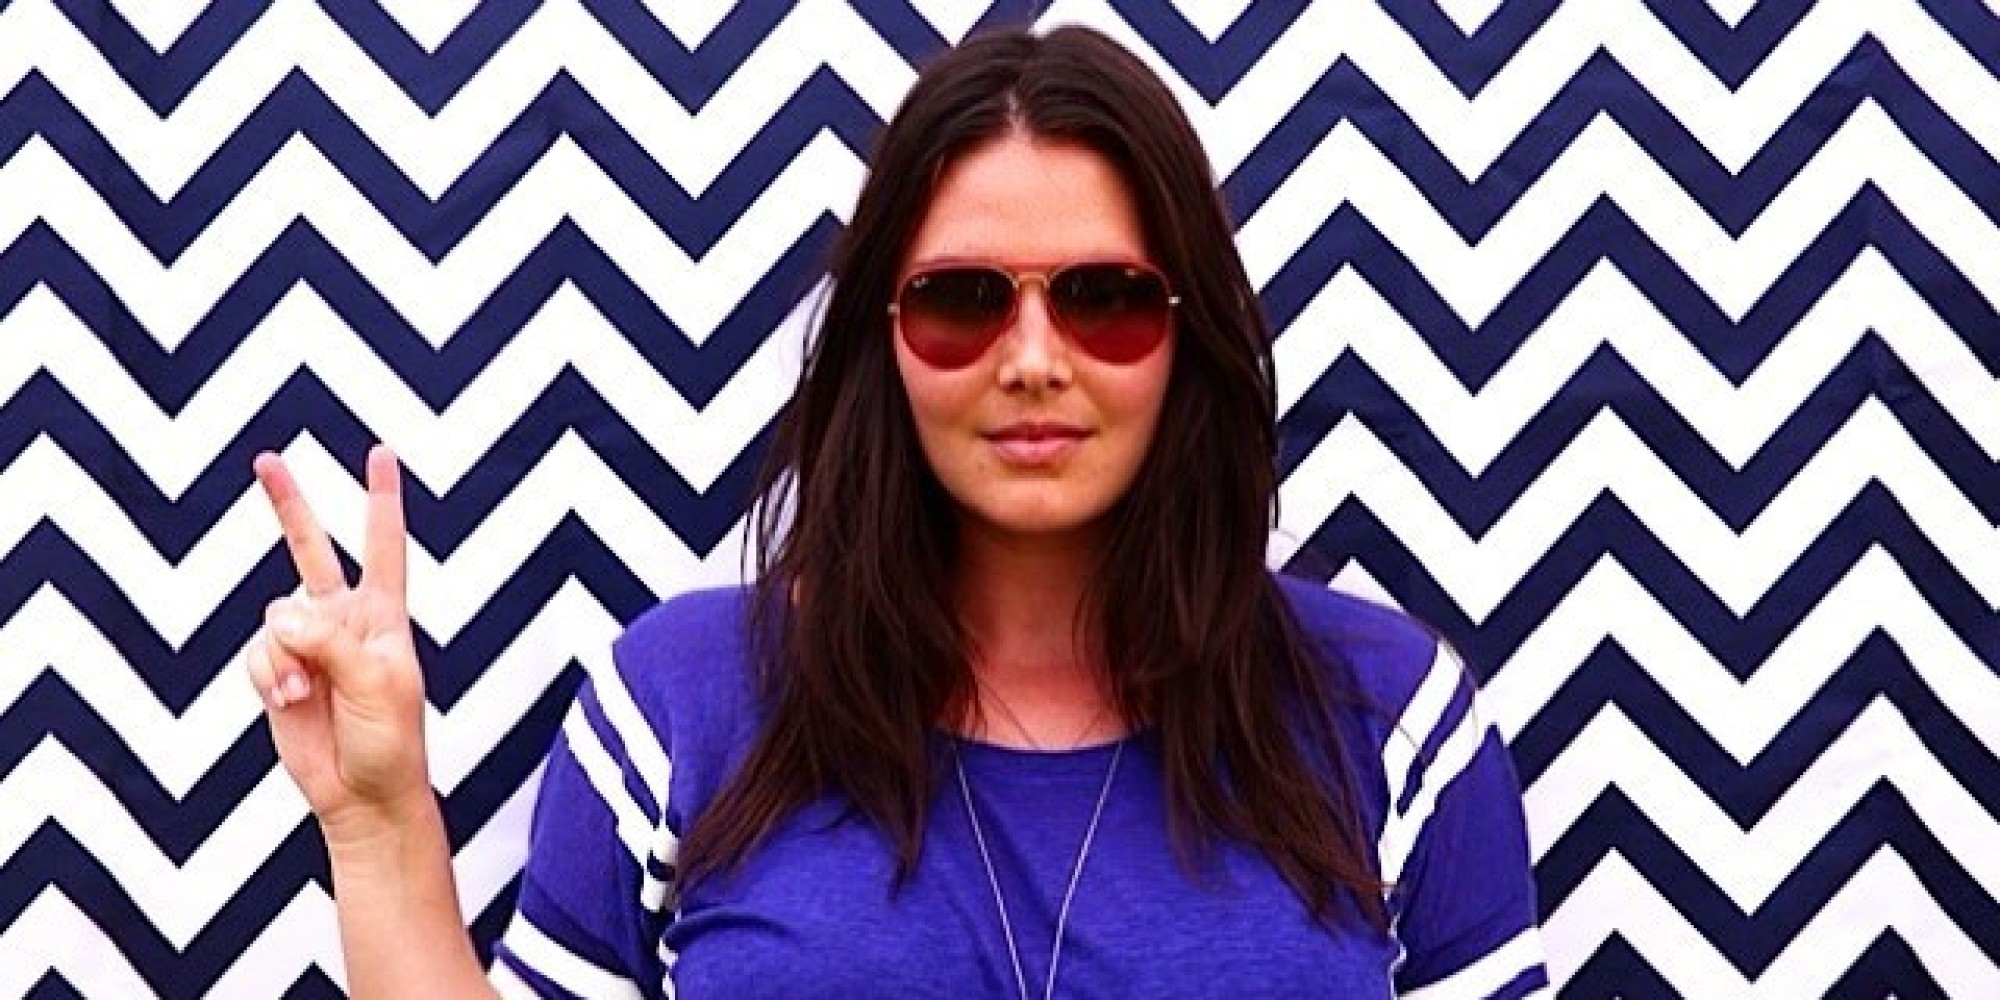 Here's What You Need To Know About Candice Huffine ...